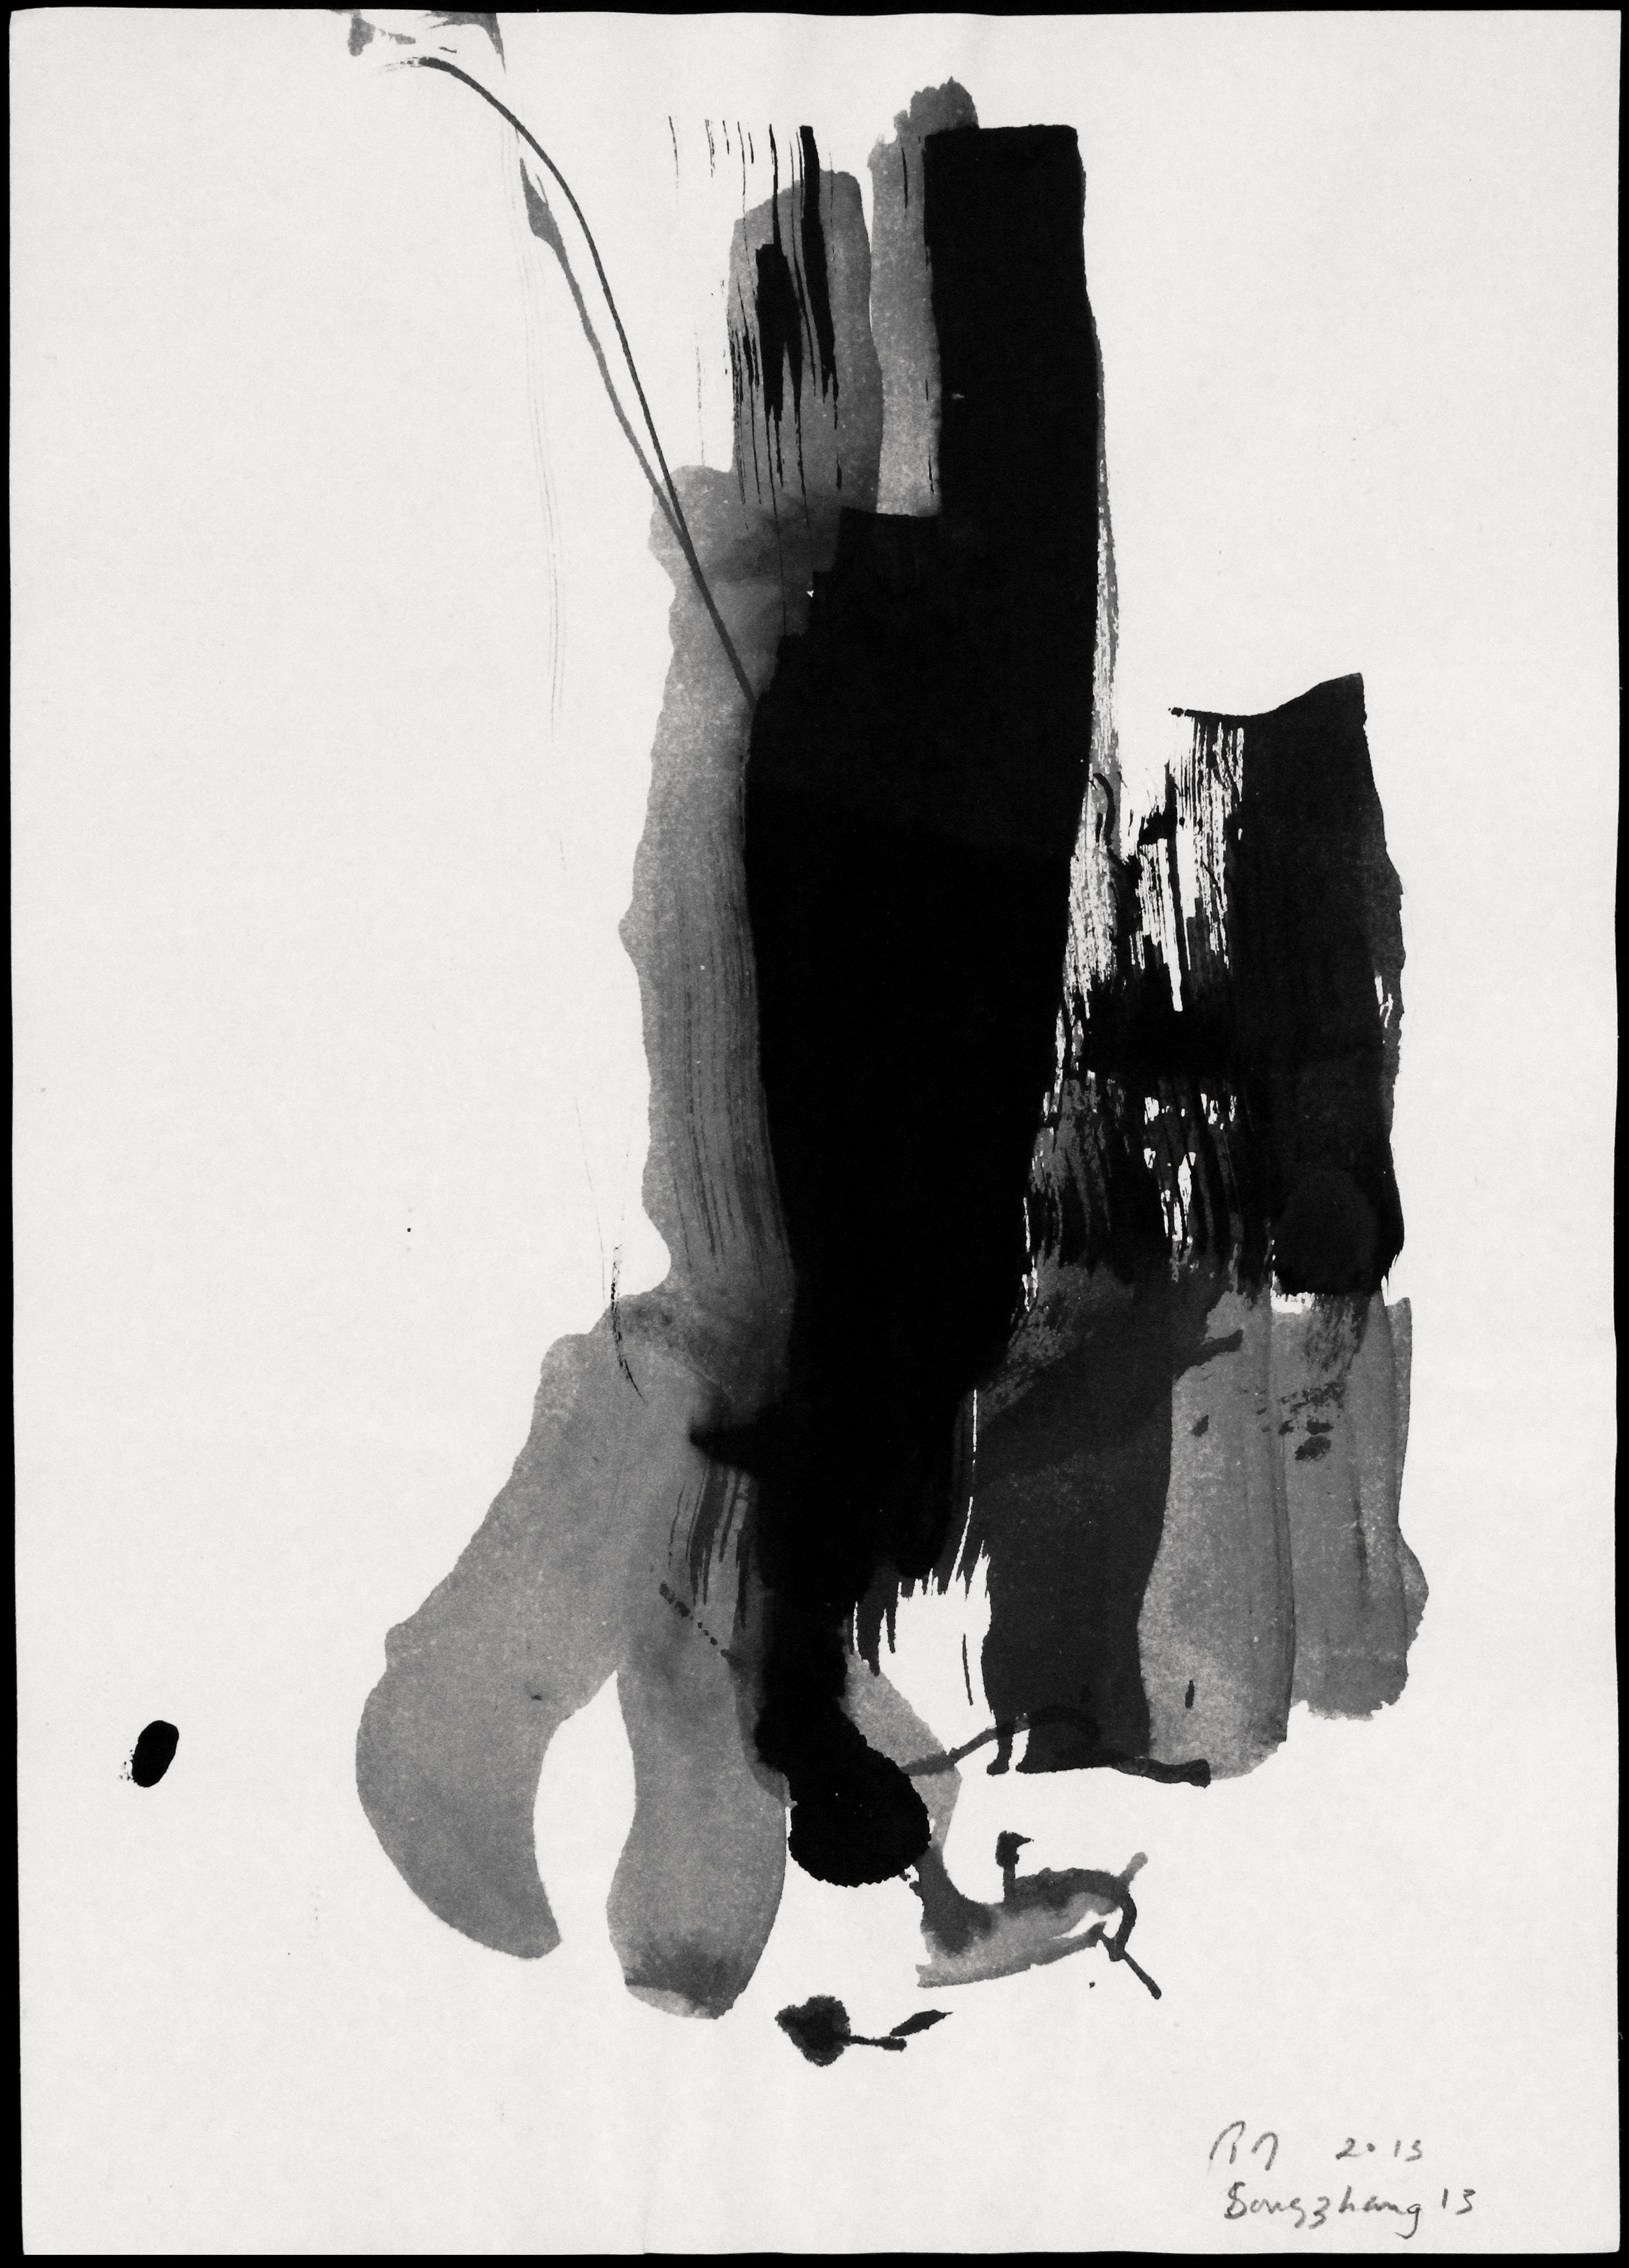 Songzhuang 13, 2013, Ink on Rice Paper, 21 in x 16 in